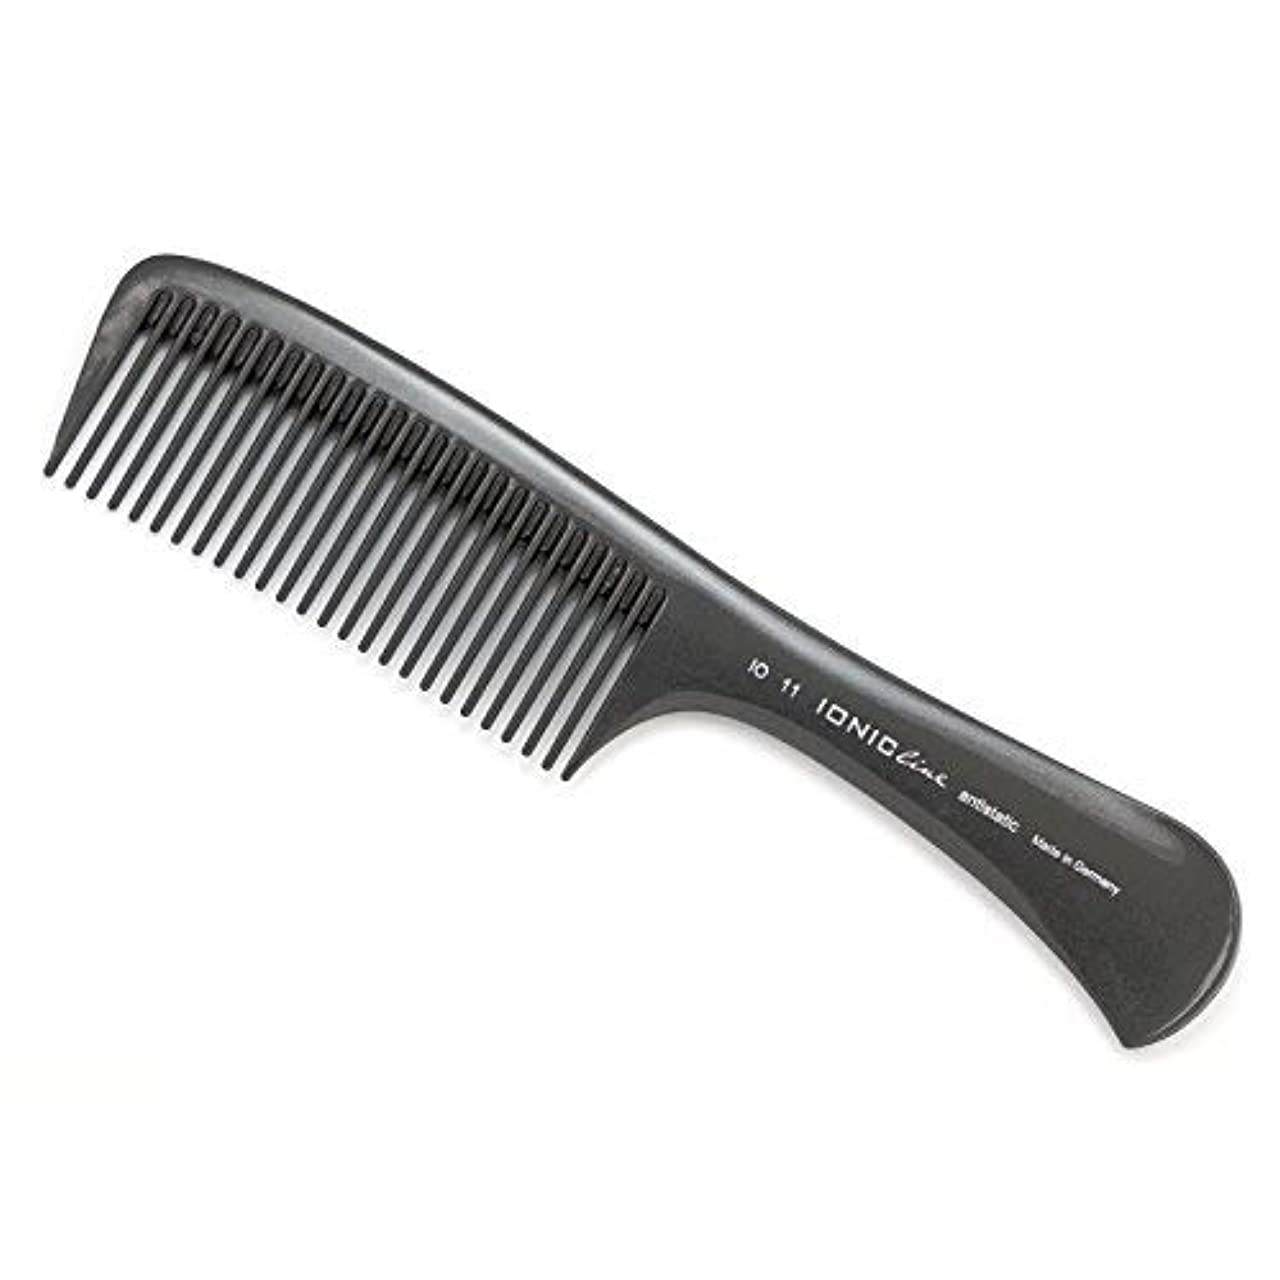 心のこもった資格治療Hercules S?gemann IONIC Line Handle Comb, Big Working Comb | Ionized Thermoplastic - Made in Germany [並行輸入品]